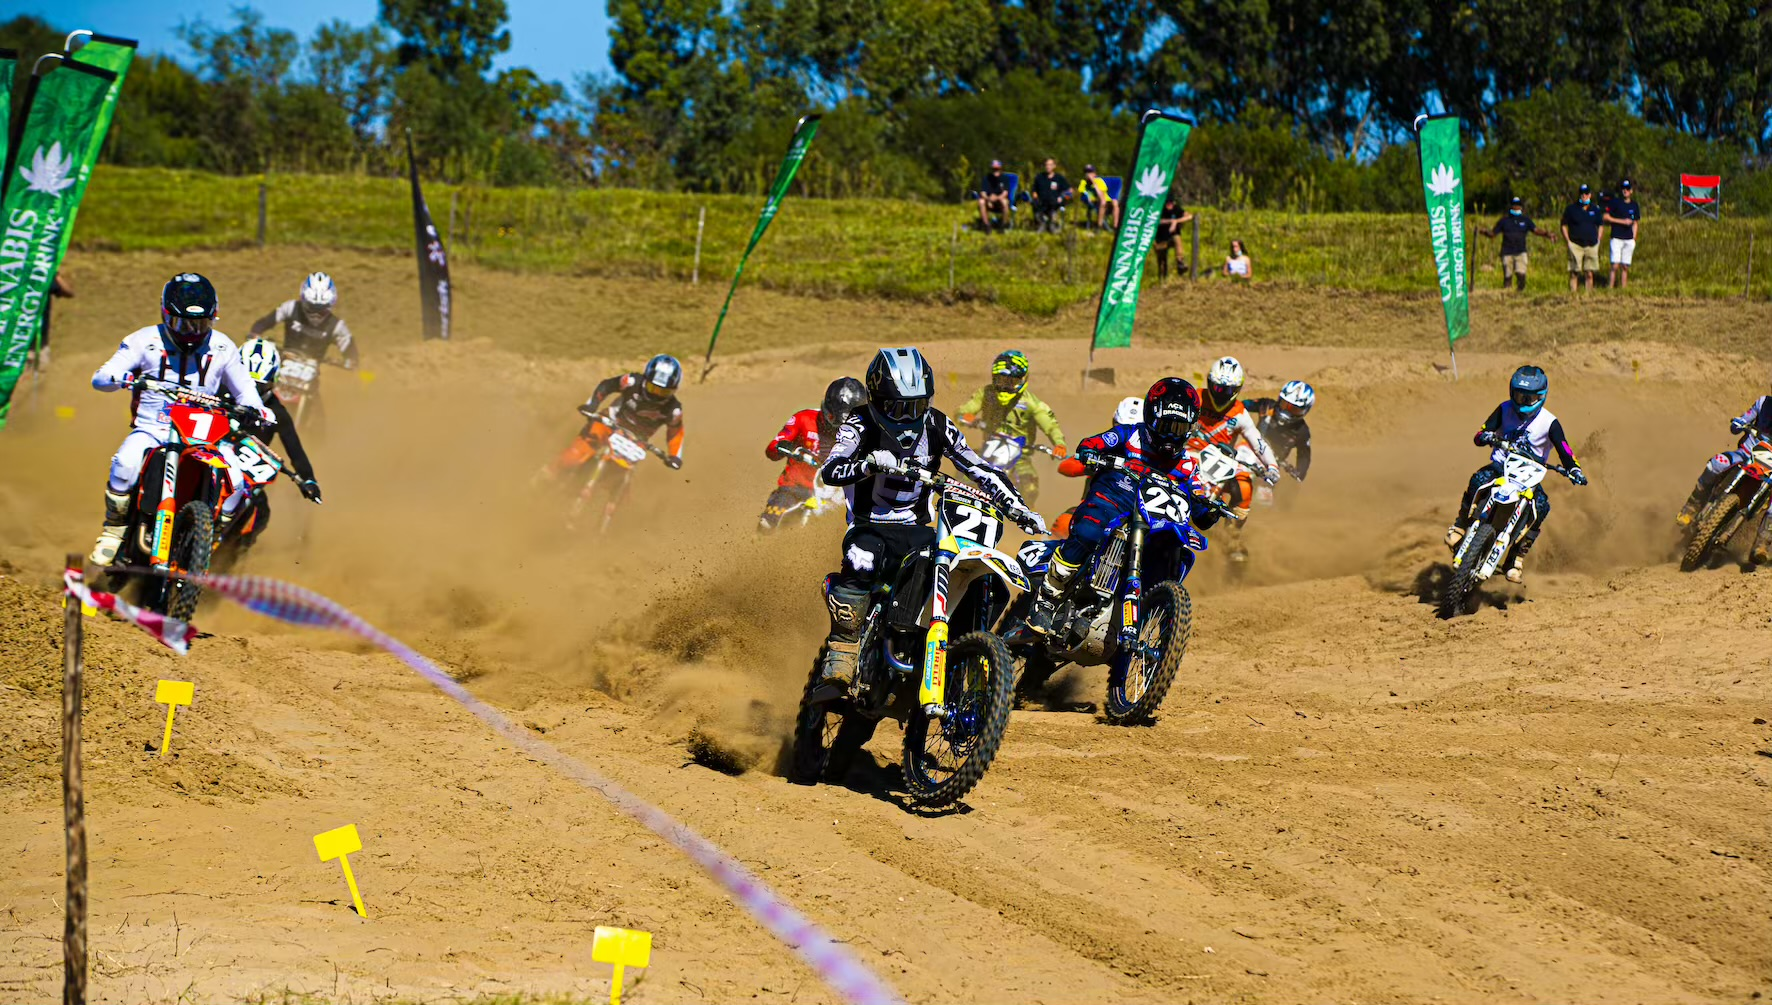 Race Report and Results from Round 2 of the 2021South African National Motocross Championship that took place over the long weekend at the Rover Raceway in Gqeberha.